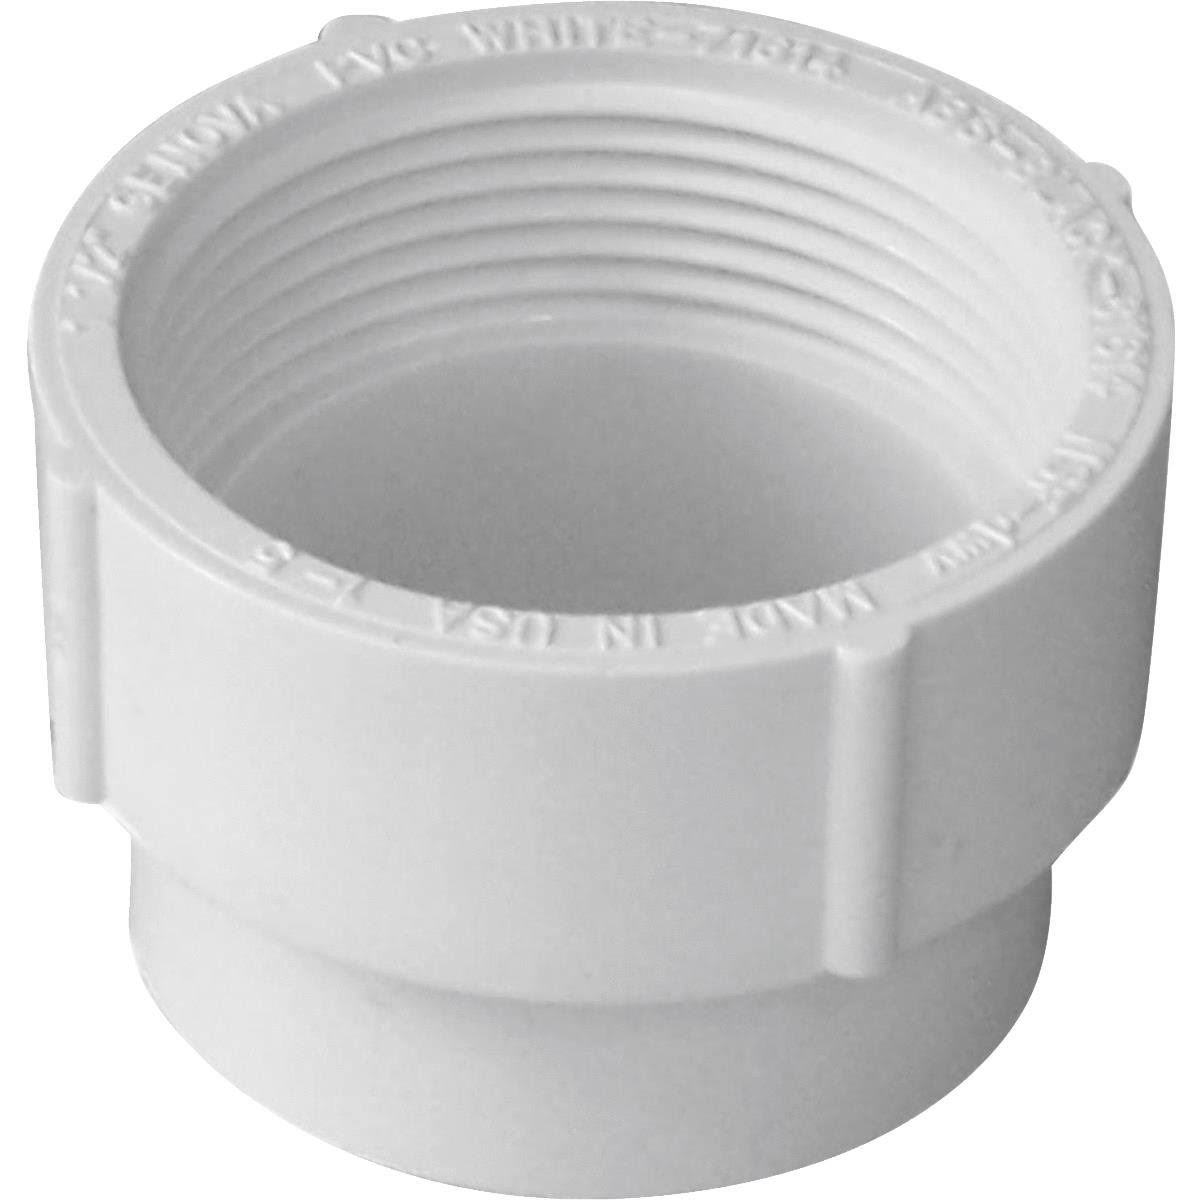 Genova Products Cleanout Adaptor - White, 4""